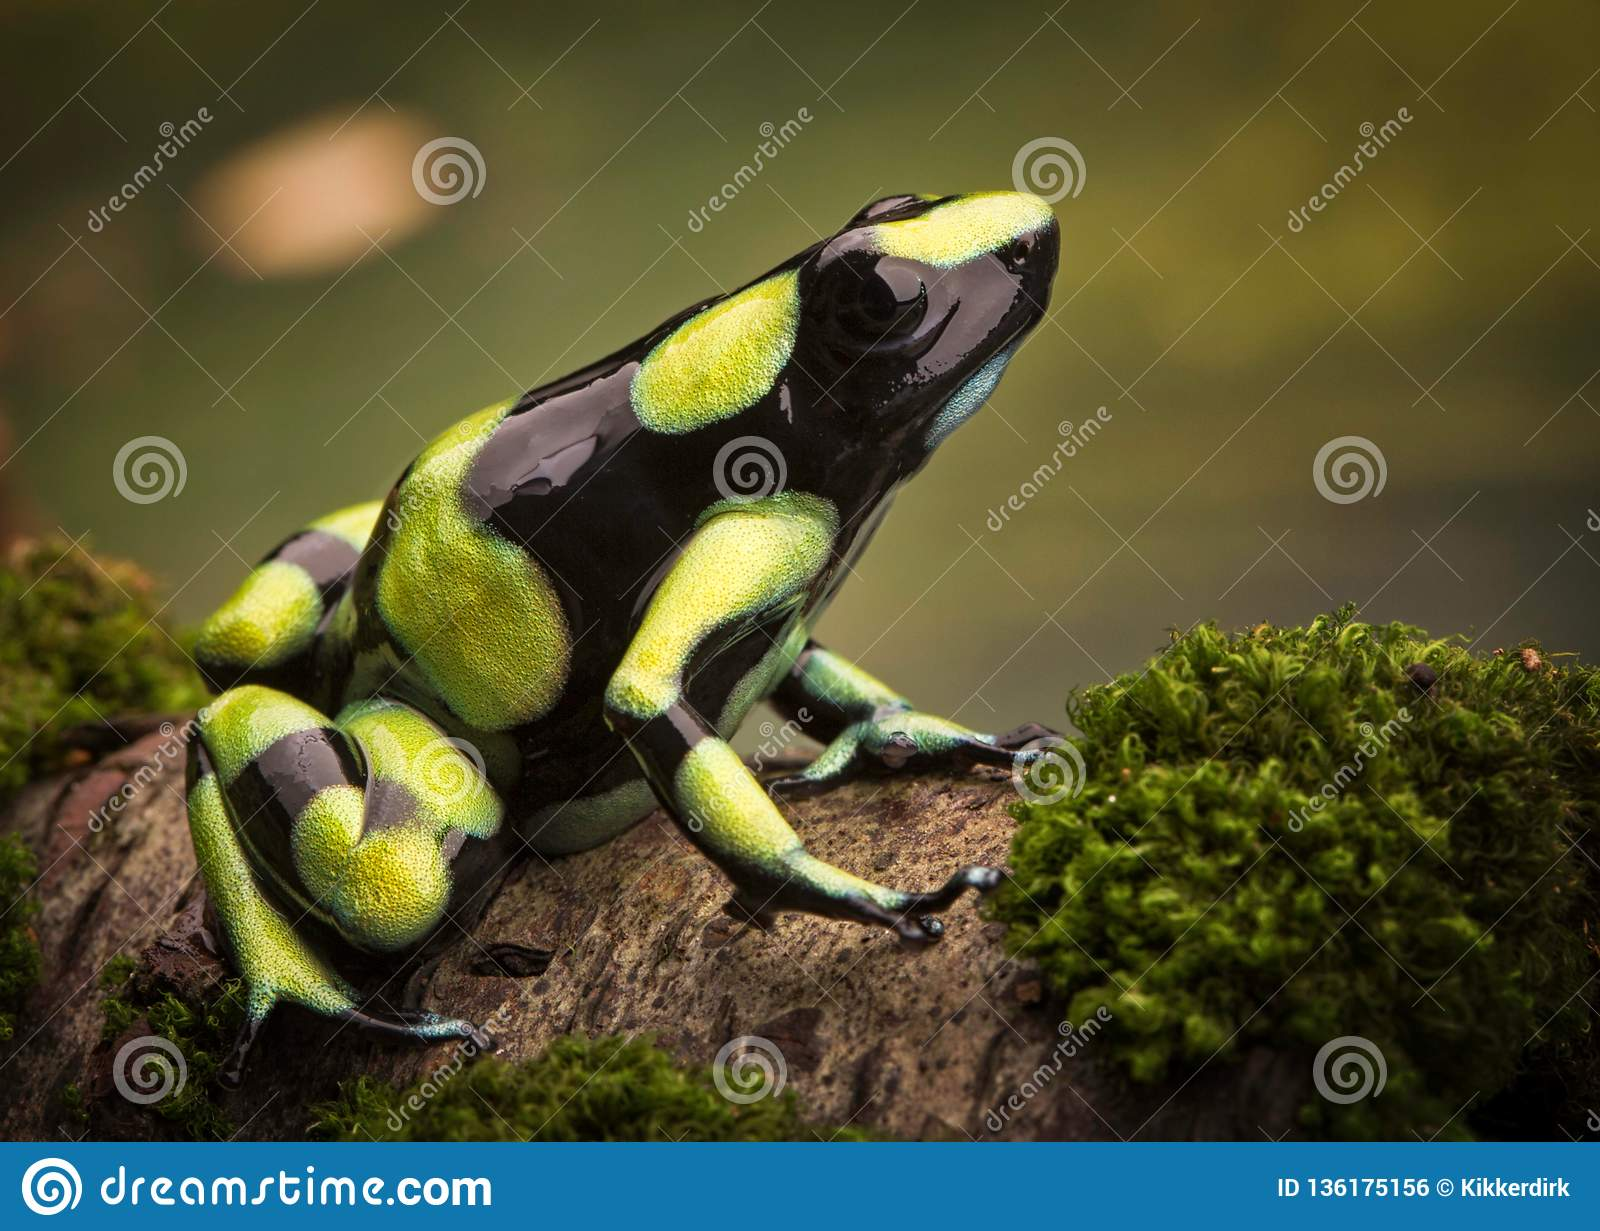 Tropical poison dart frog from the Amazon rain forest in Colombia